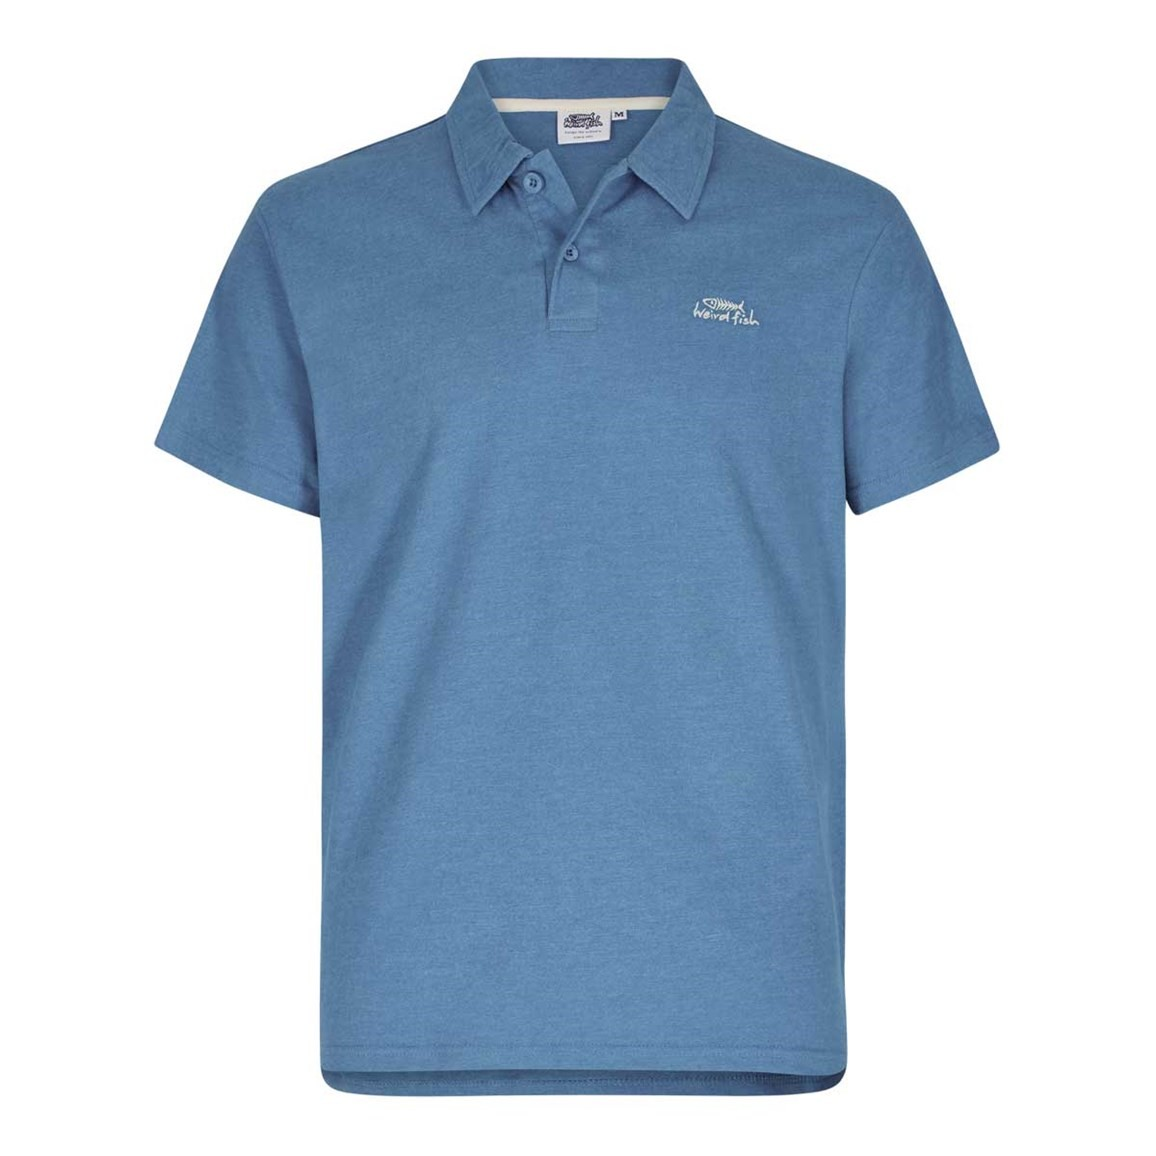 Weird fish andy embroidered logo jersey polo shirt ebay for Embroidered logos on shirts